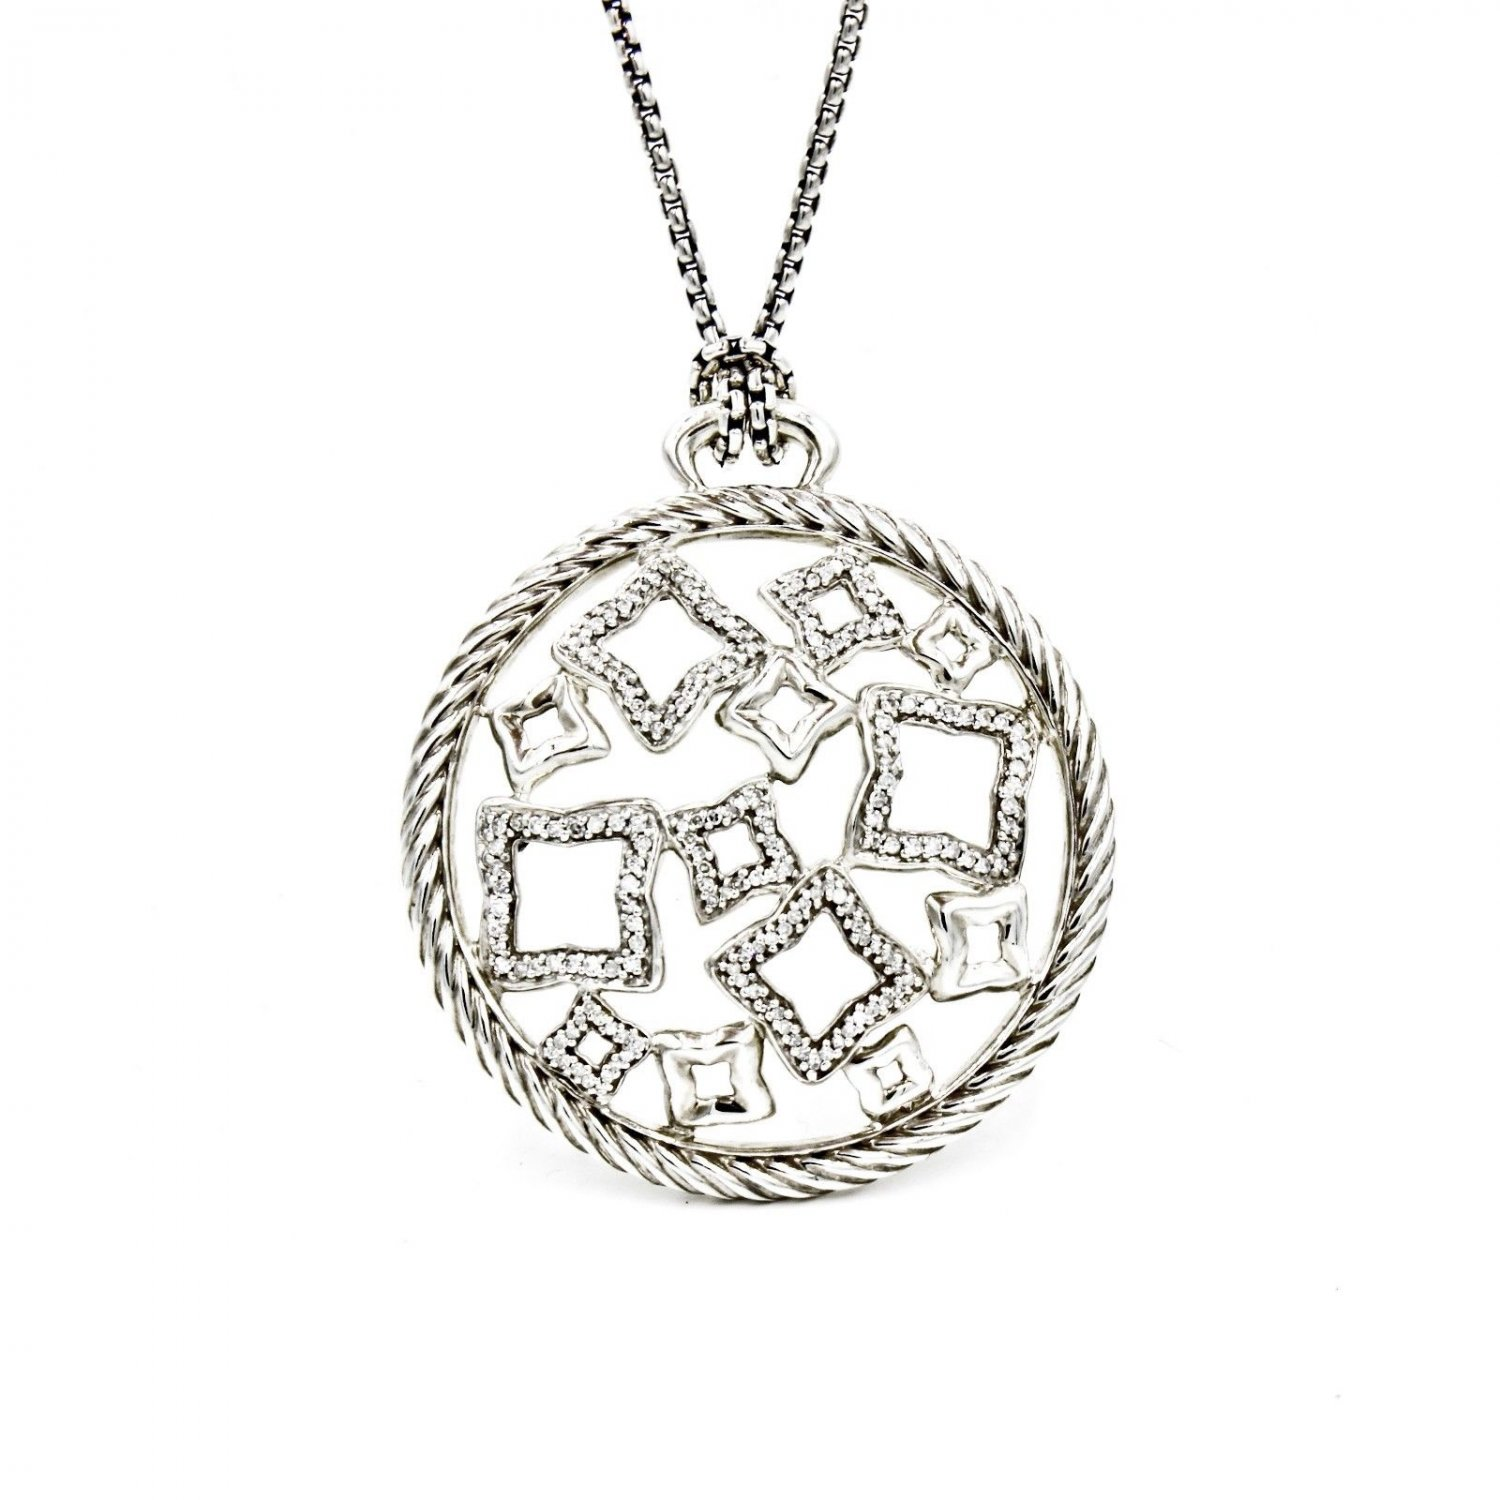 David Yurman XL Quatrefoil Pendant Necklace in Sterling Silver with Diamonds 16""